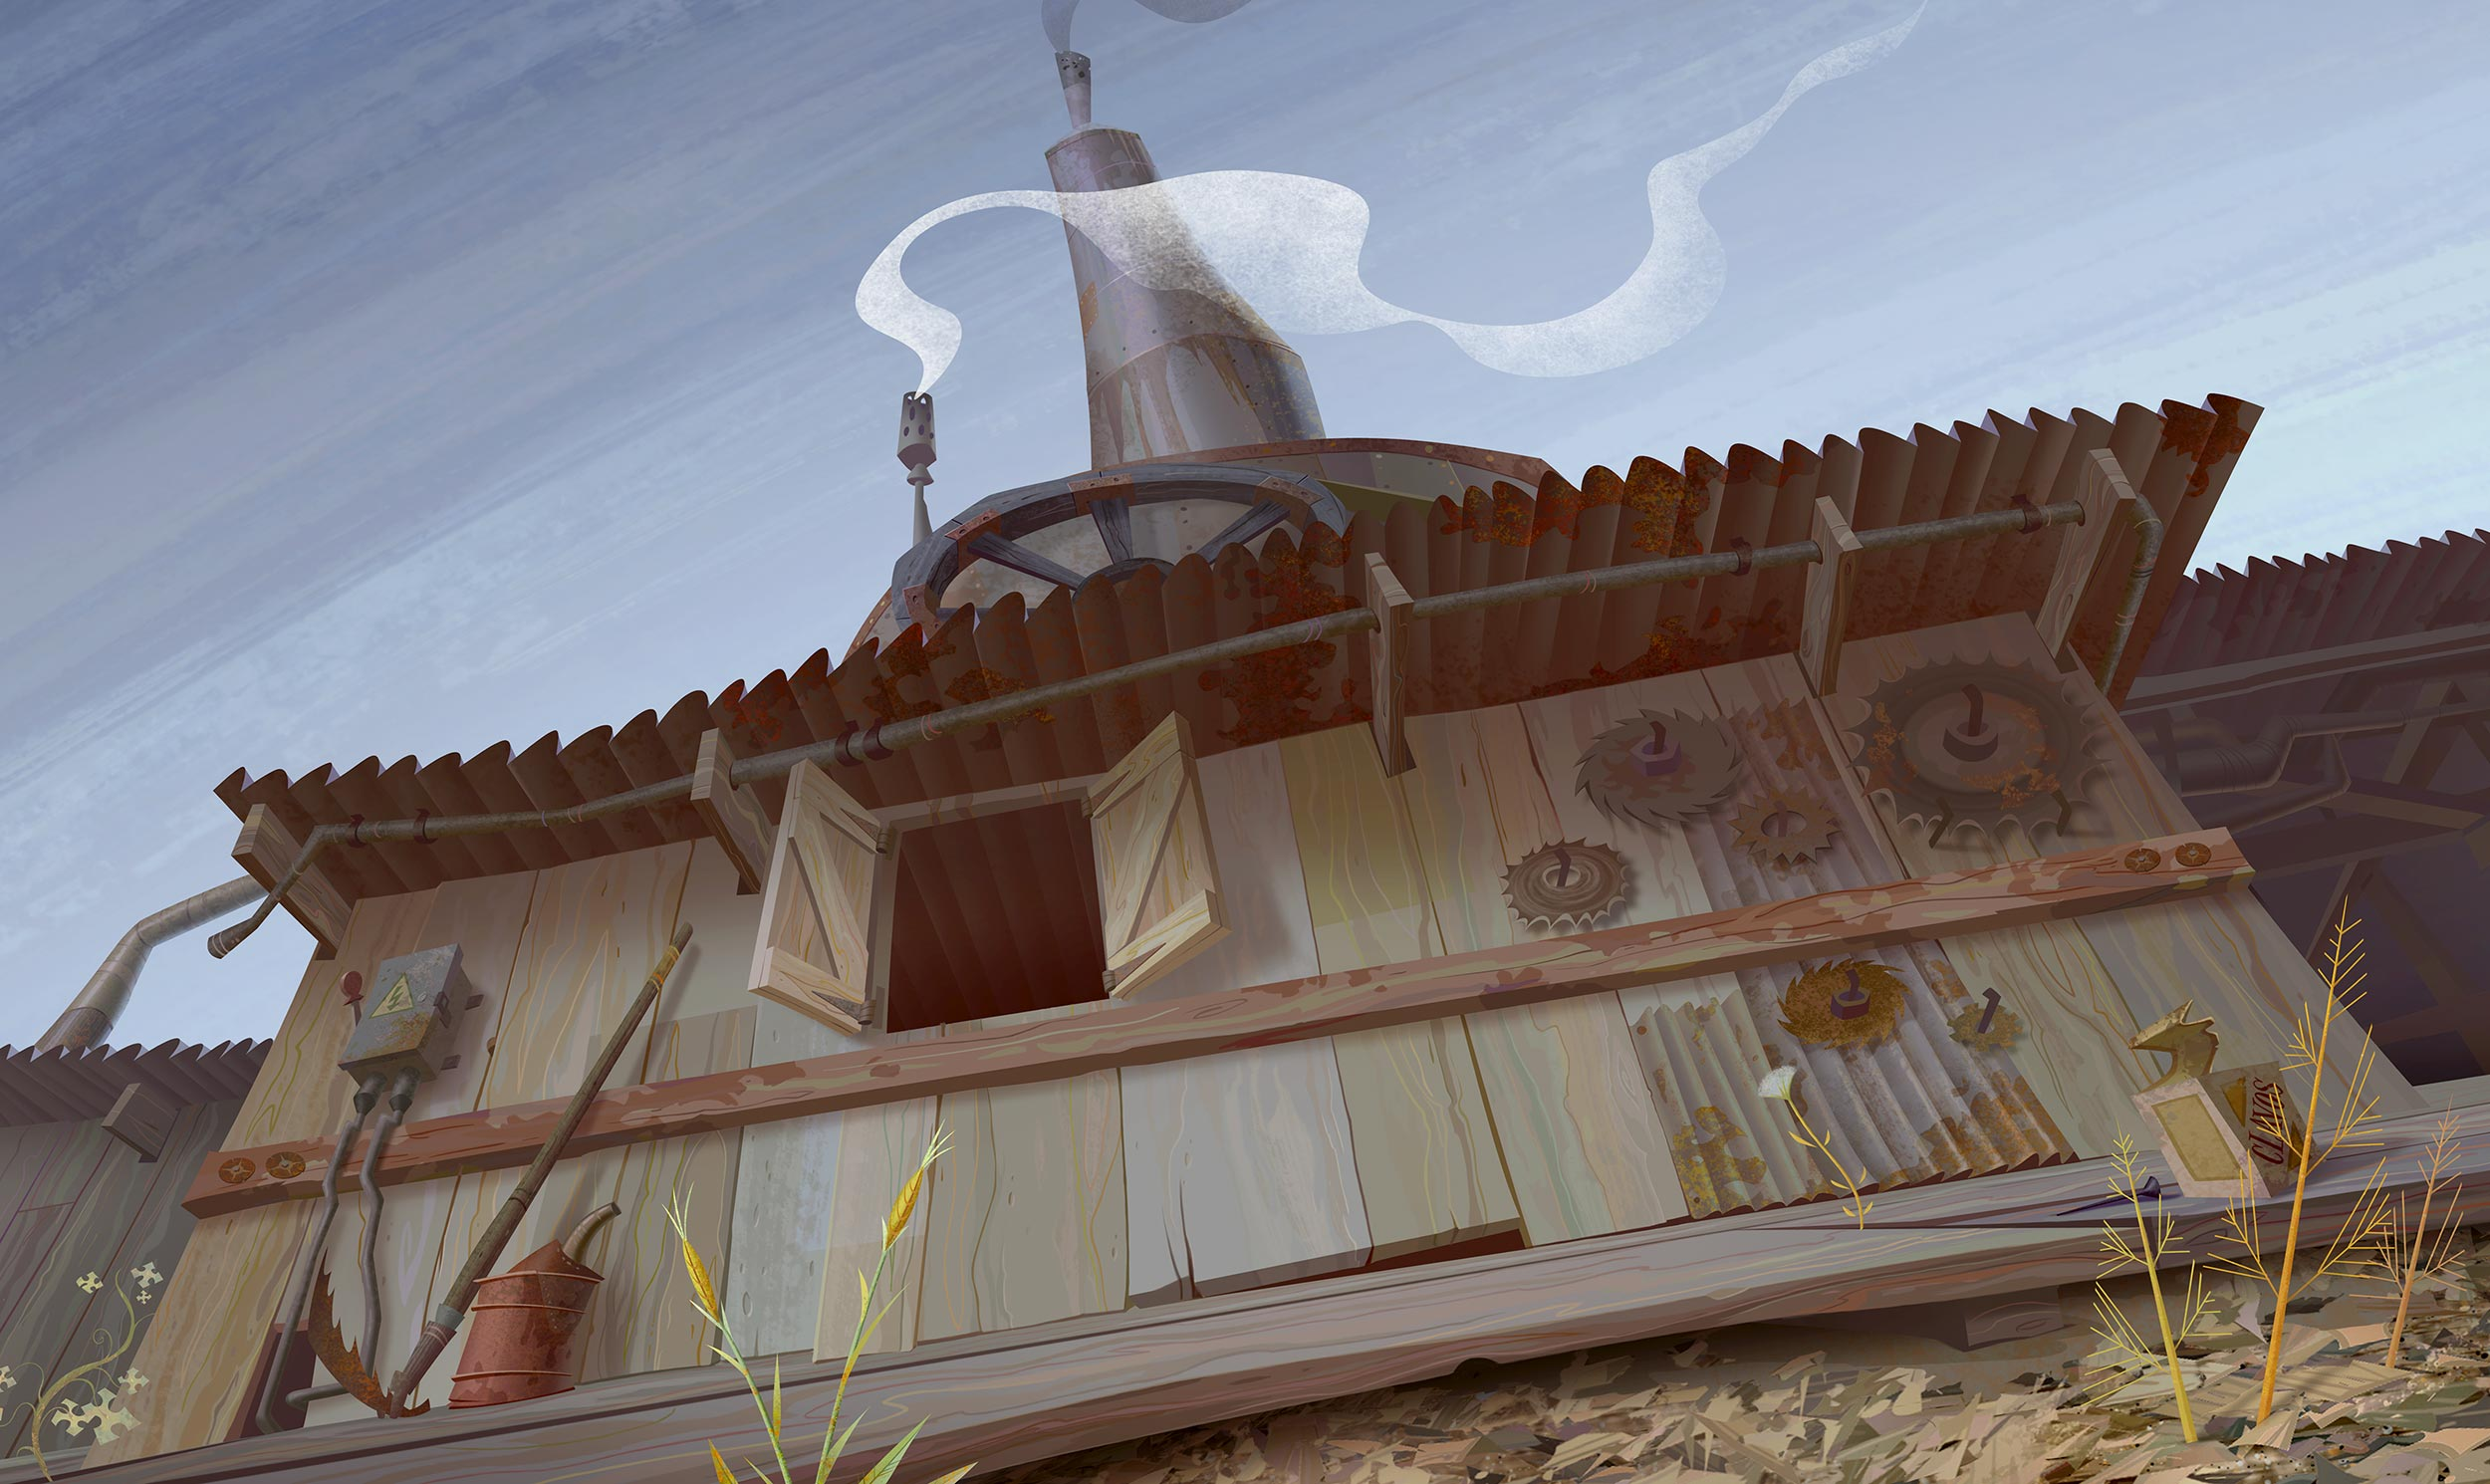 Digitally Painted in Photoshop. Copyright © 2007 Laika Entertainment